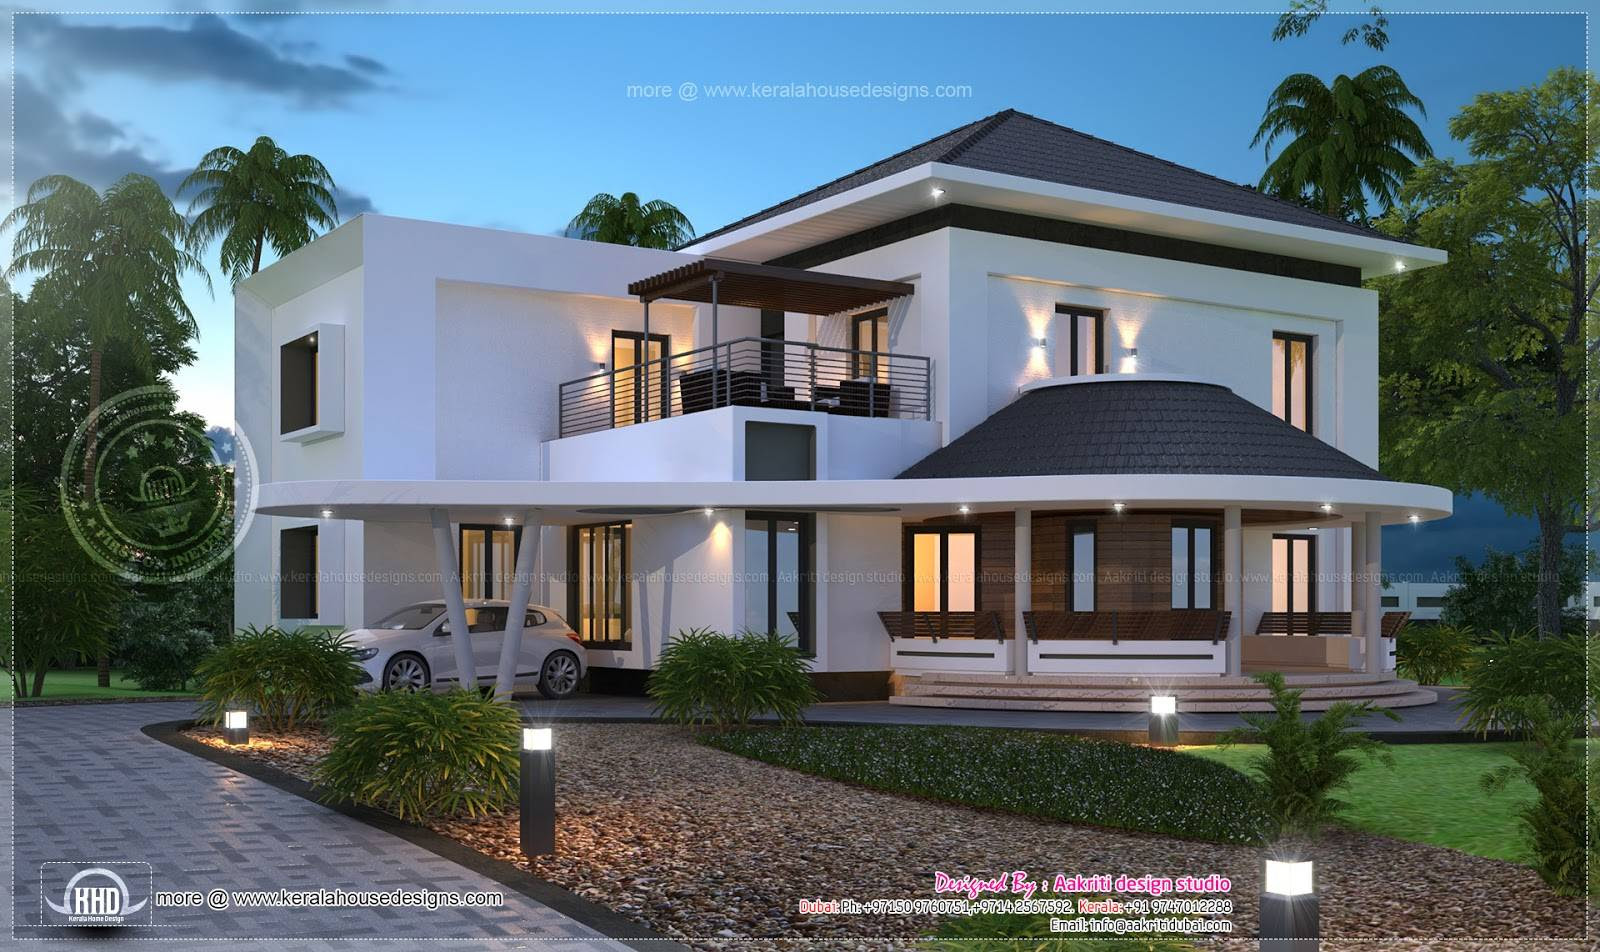 Front Elevation House Dubai : House exterior design in dubai front